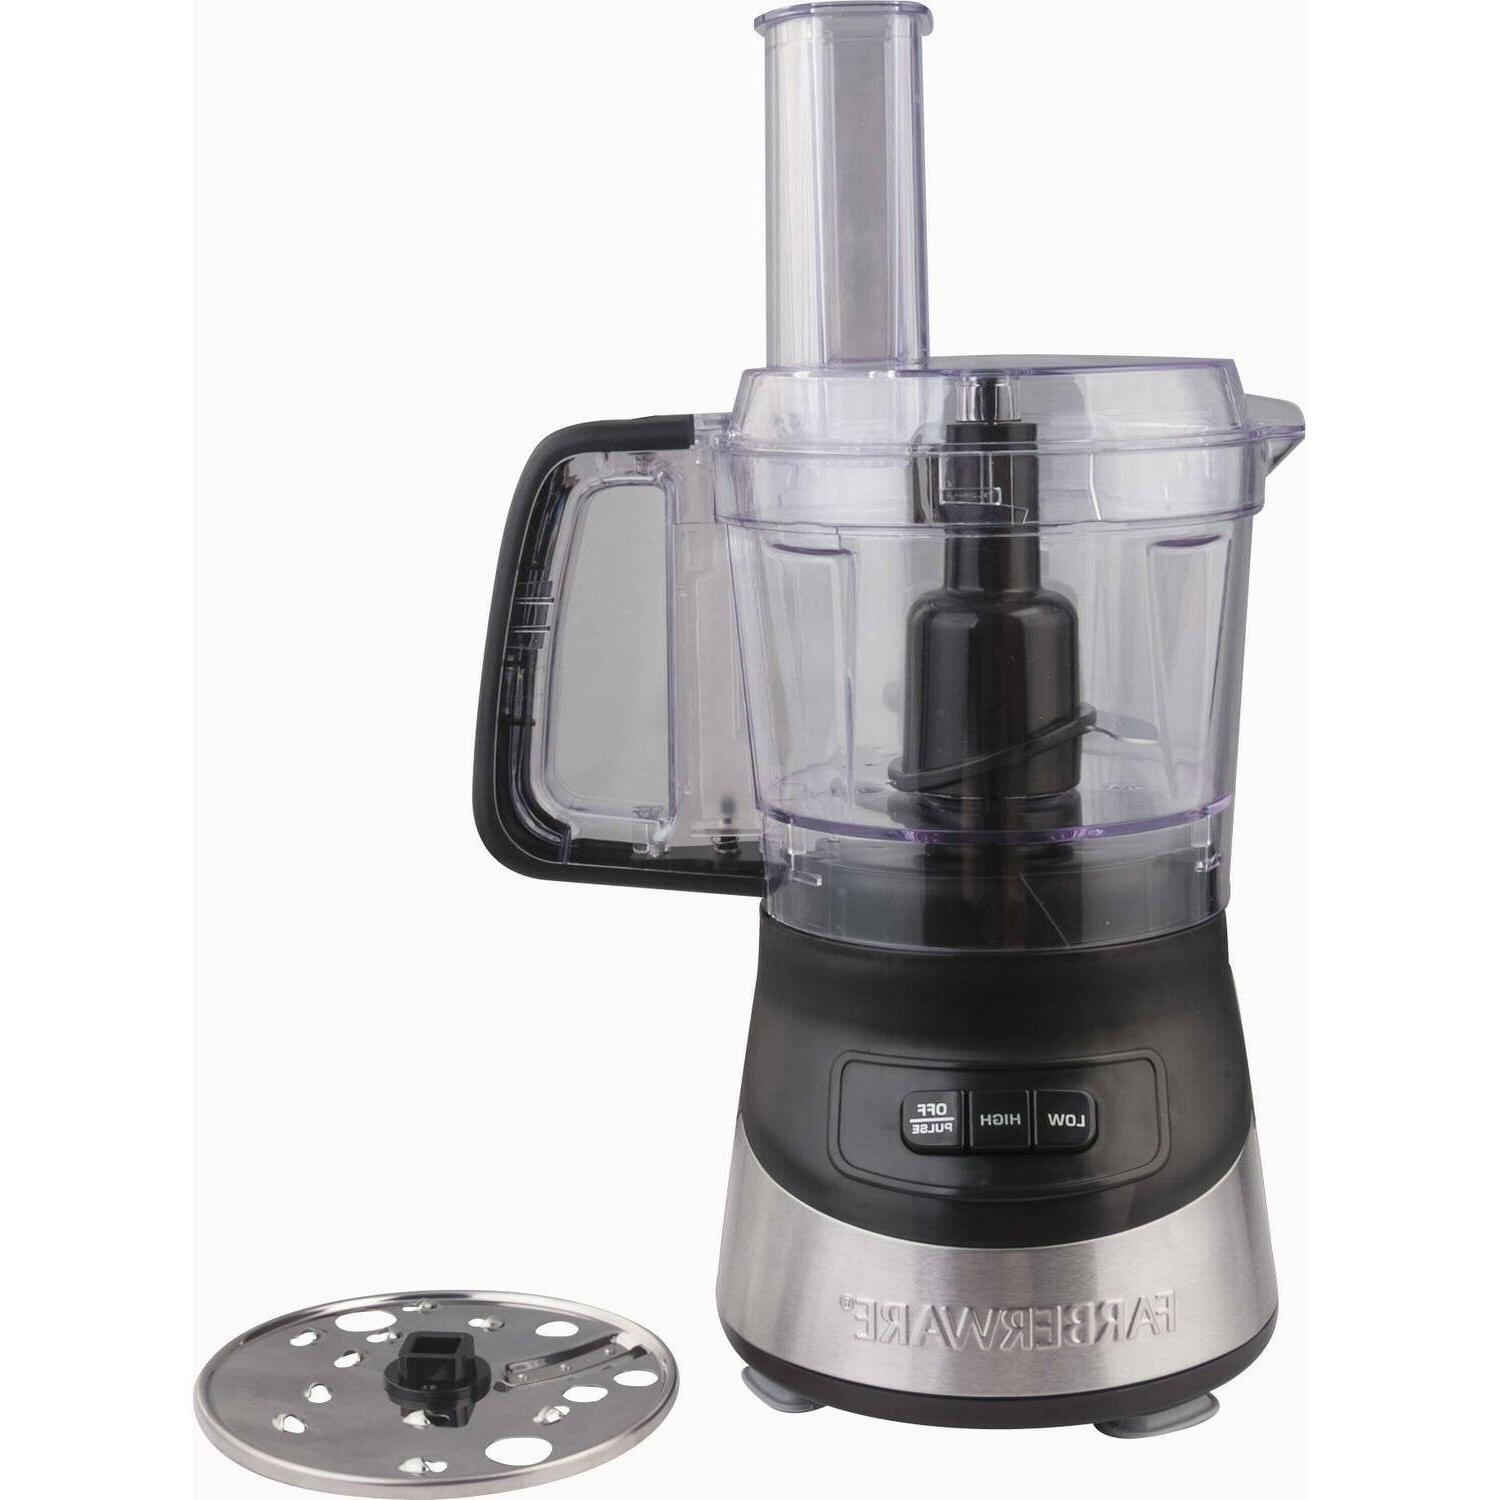 4 cup food processor with stainless steel